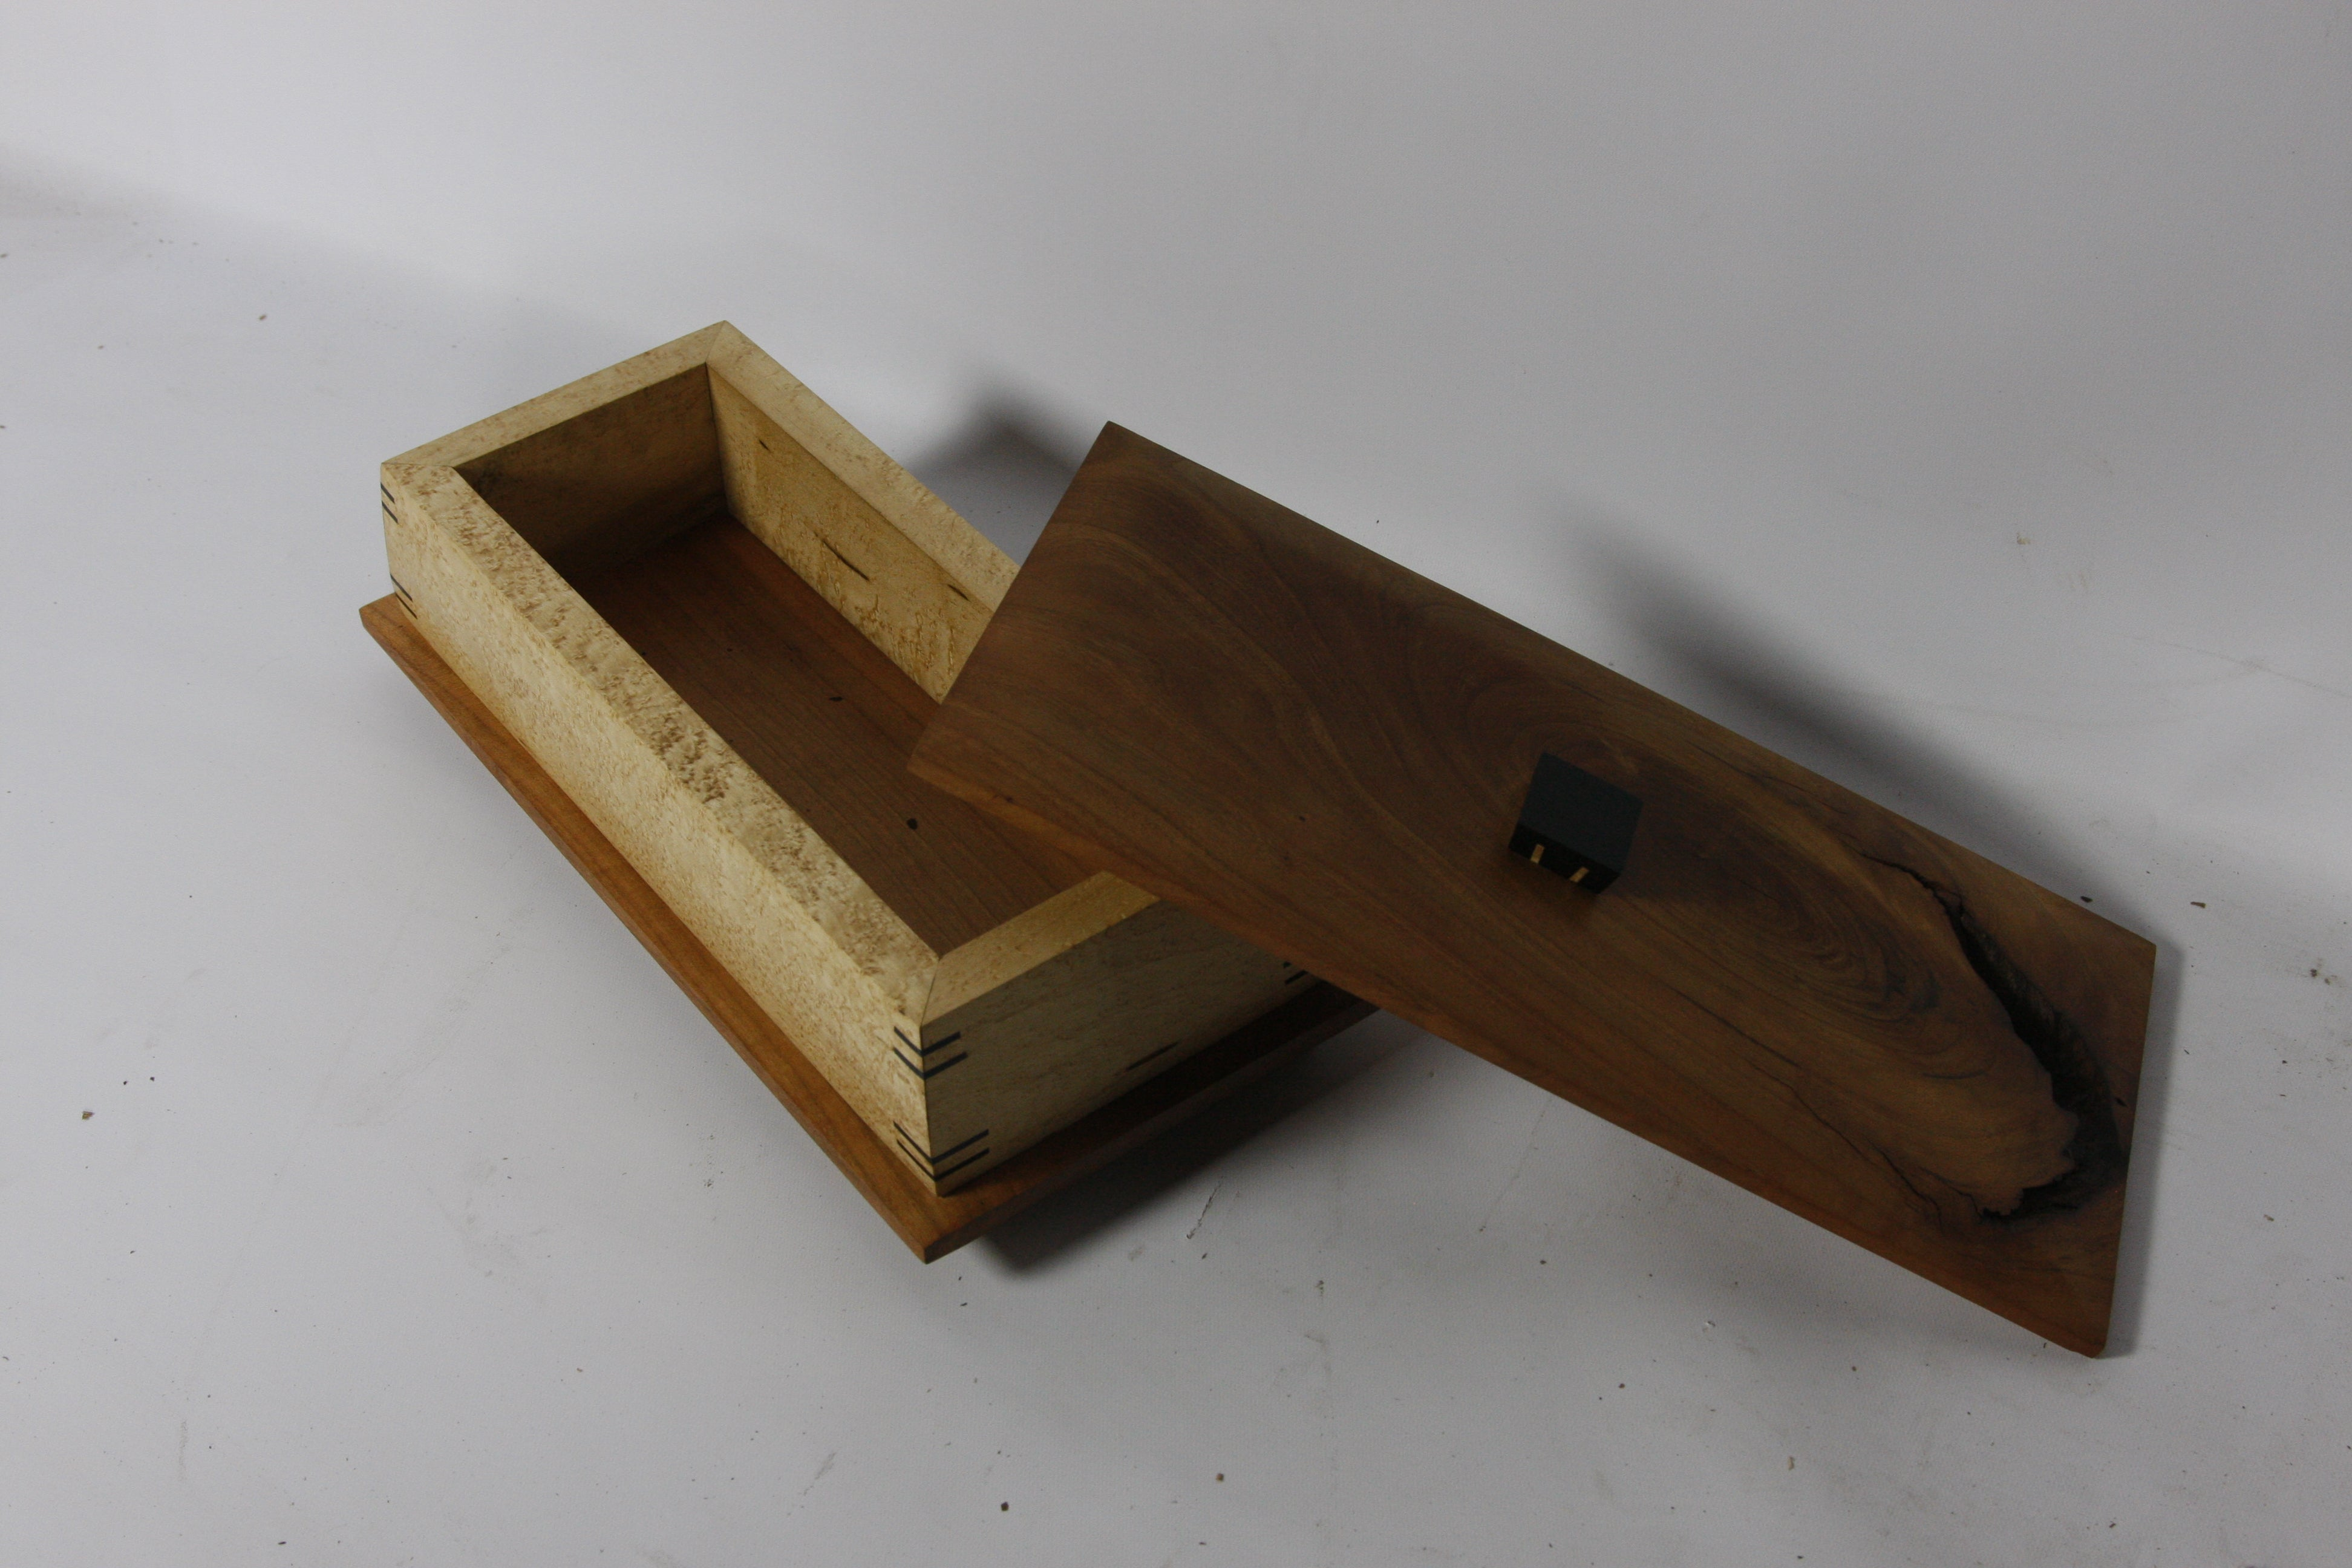 Live Edge Artisan Memento Box: Black Walnut, Birds Eye Maple & Macassar Ebony